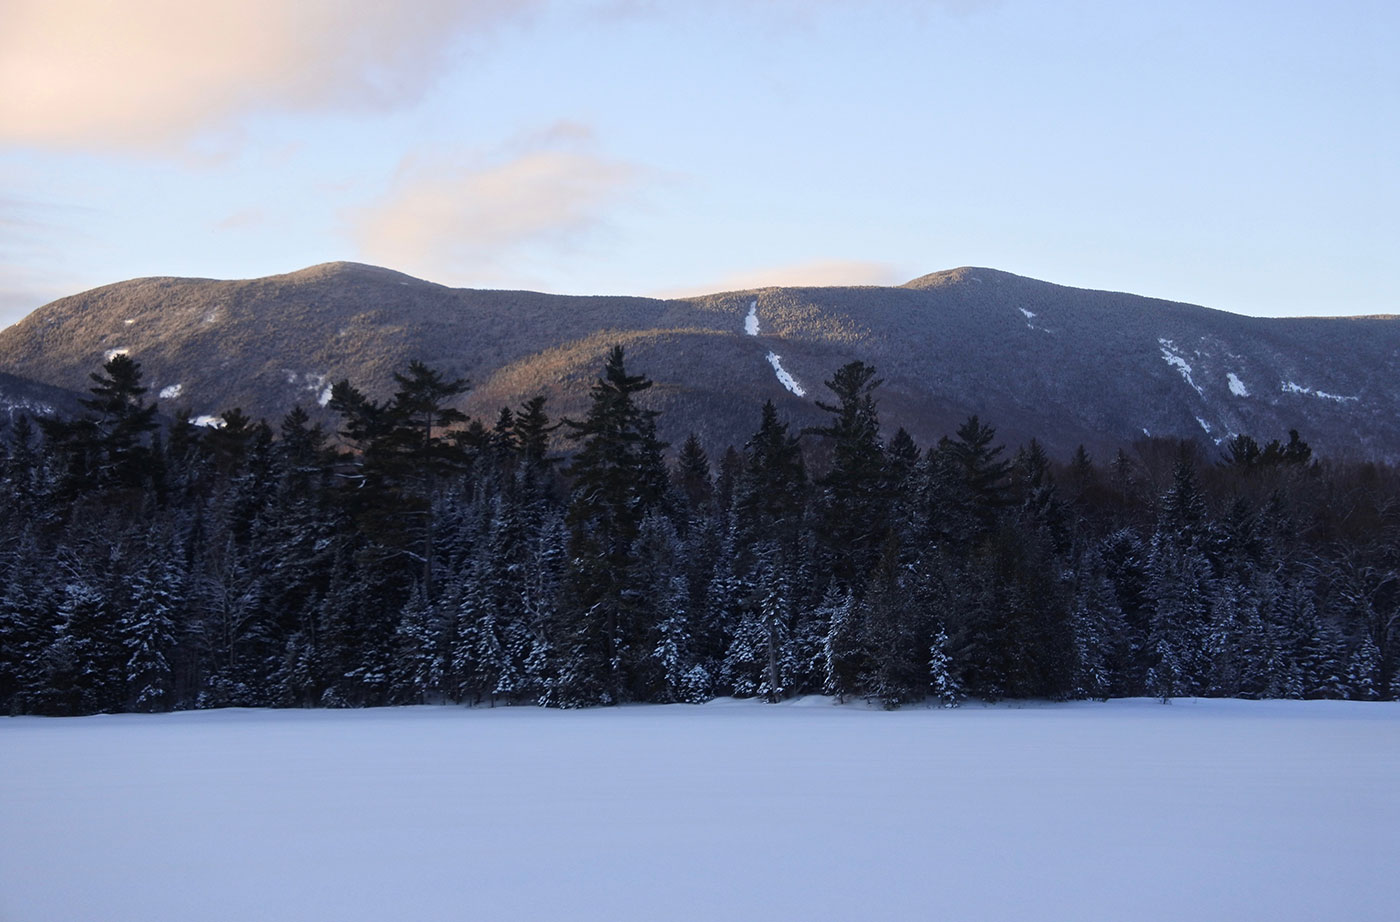 Little Lyford pond and Baker Mountain, 100-Mile Wilderness